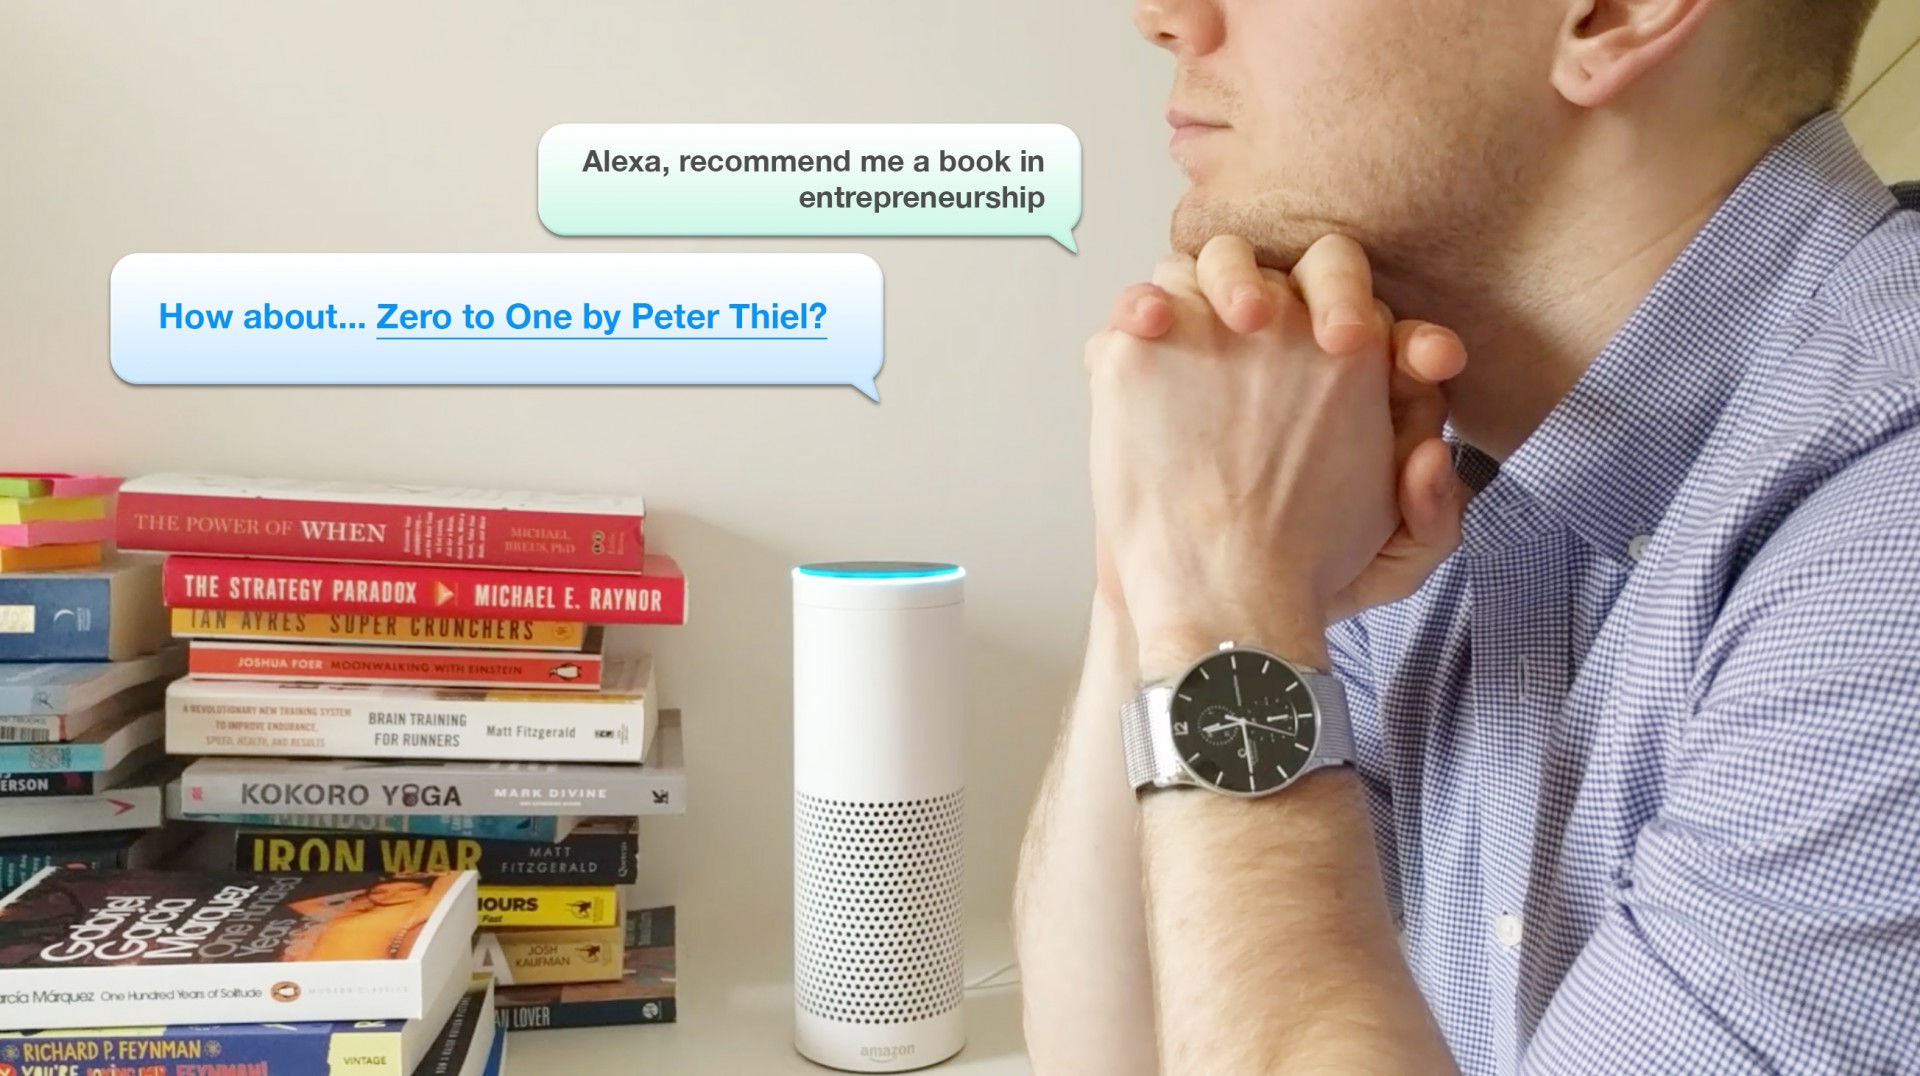 Find Your Next Read with Recommend Me A Book App for Amazon Echo